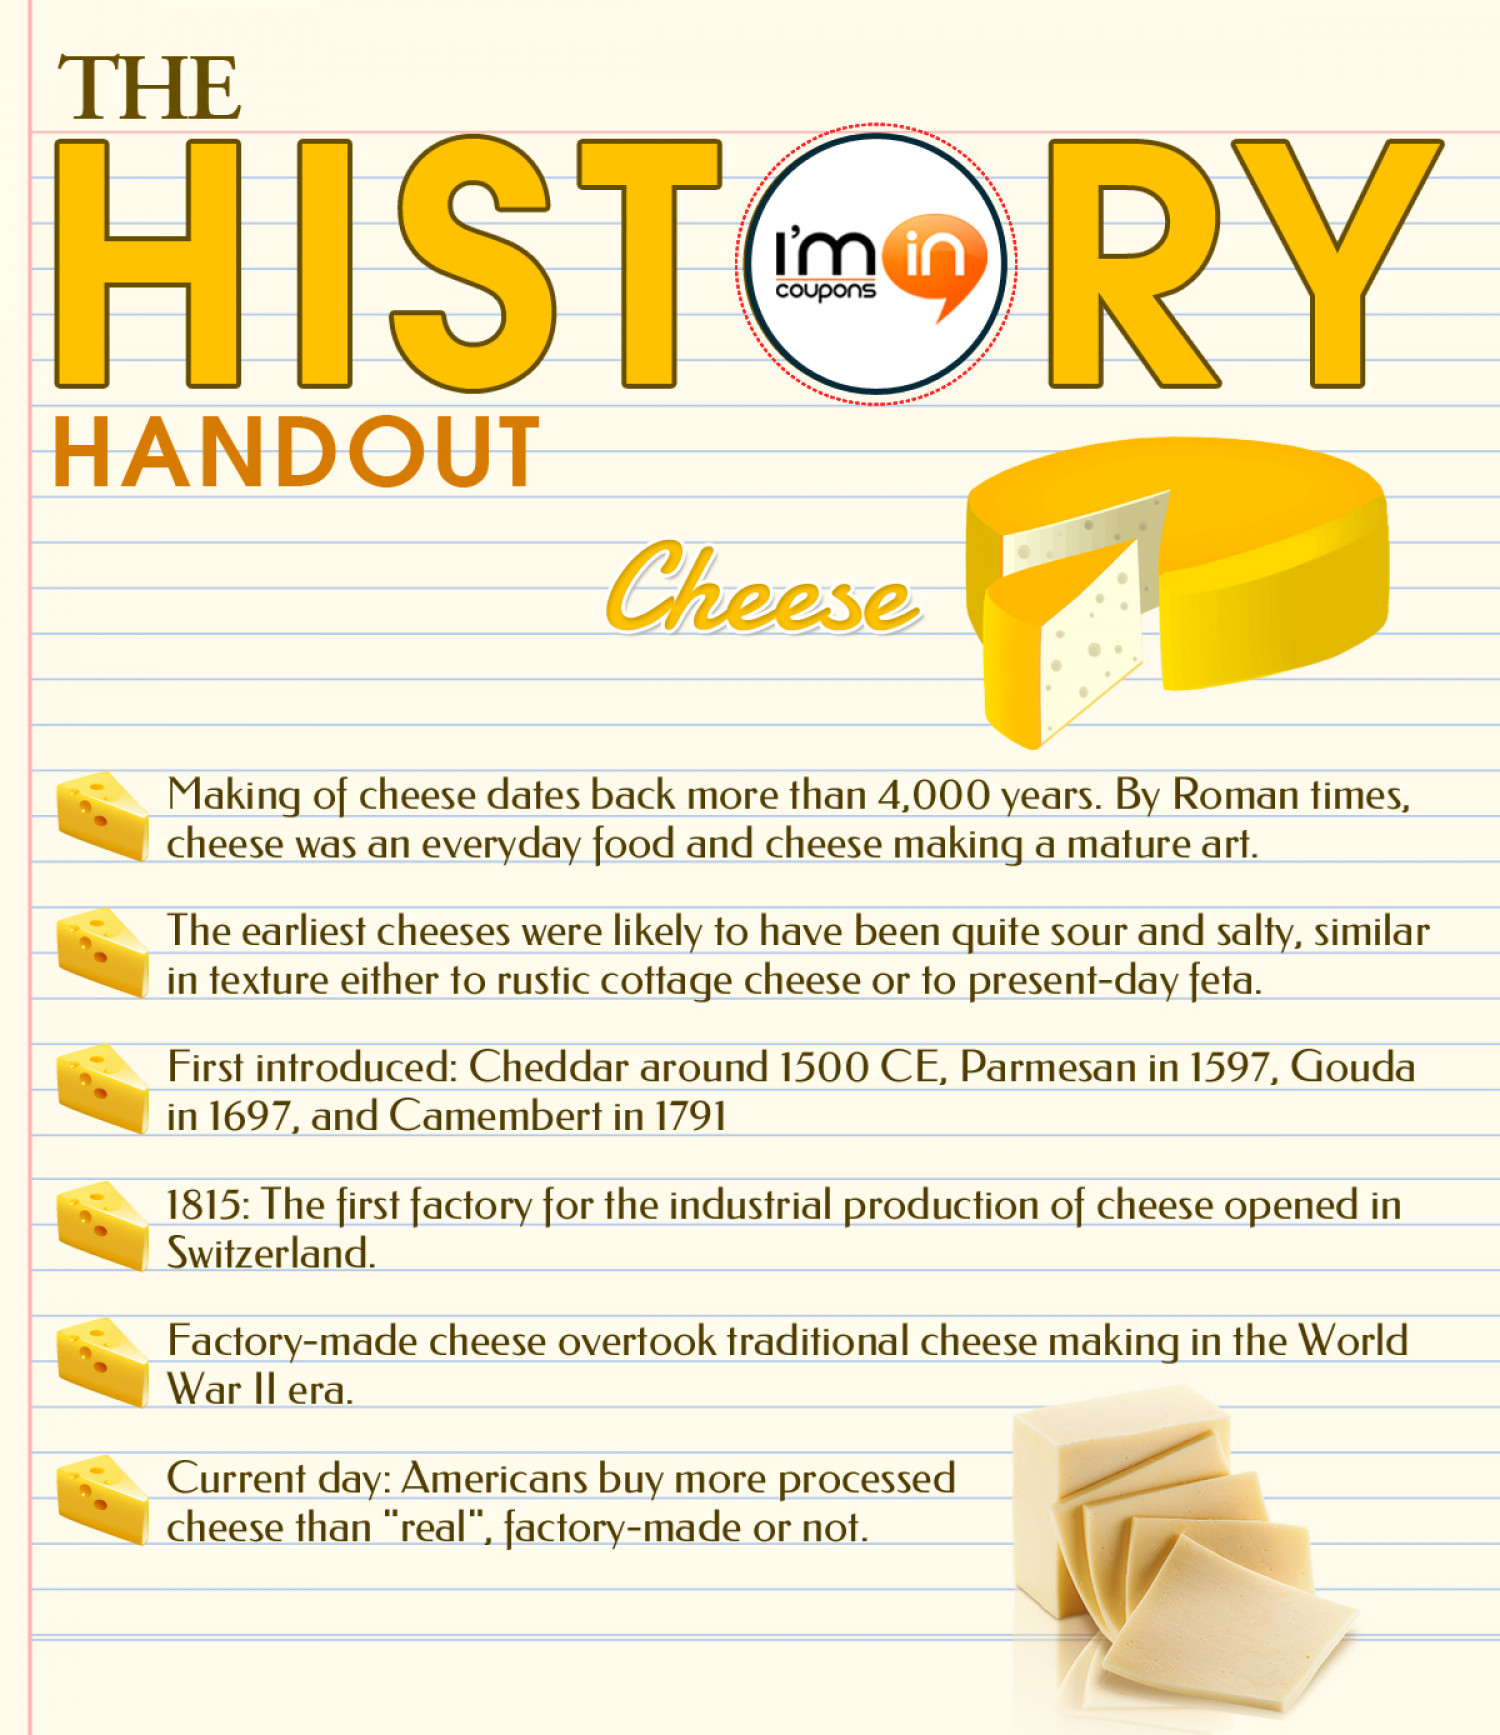 The History Handout - Cheese Infographic